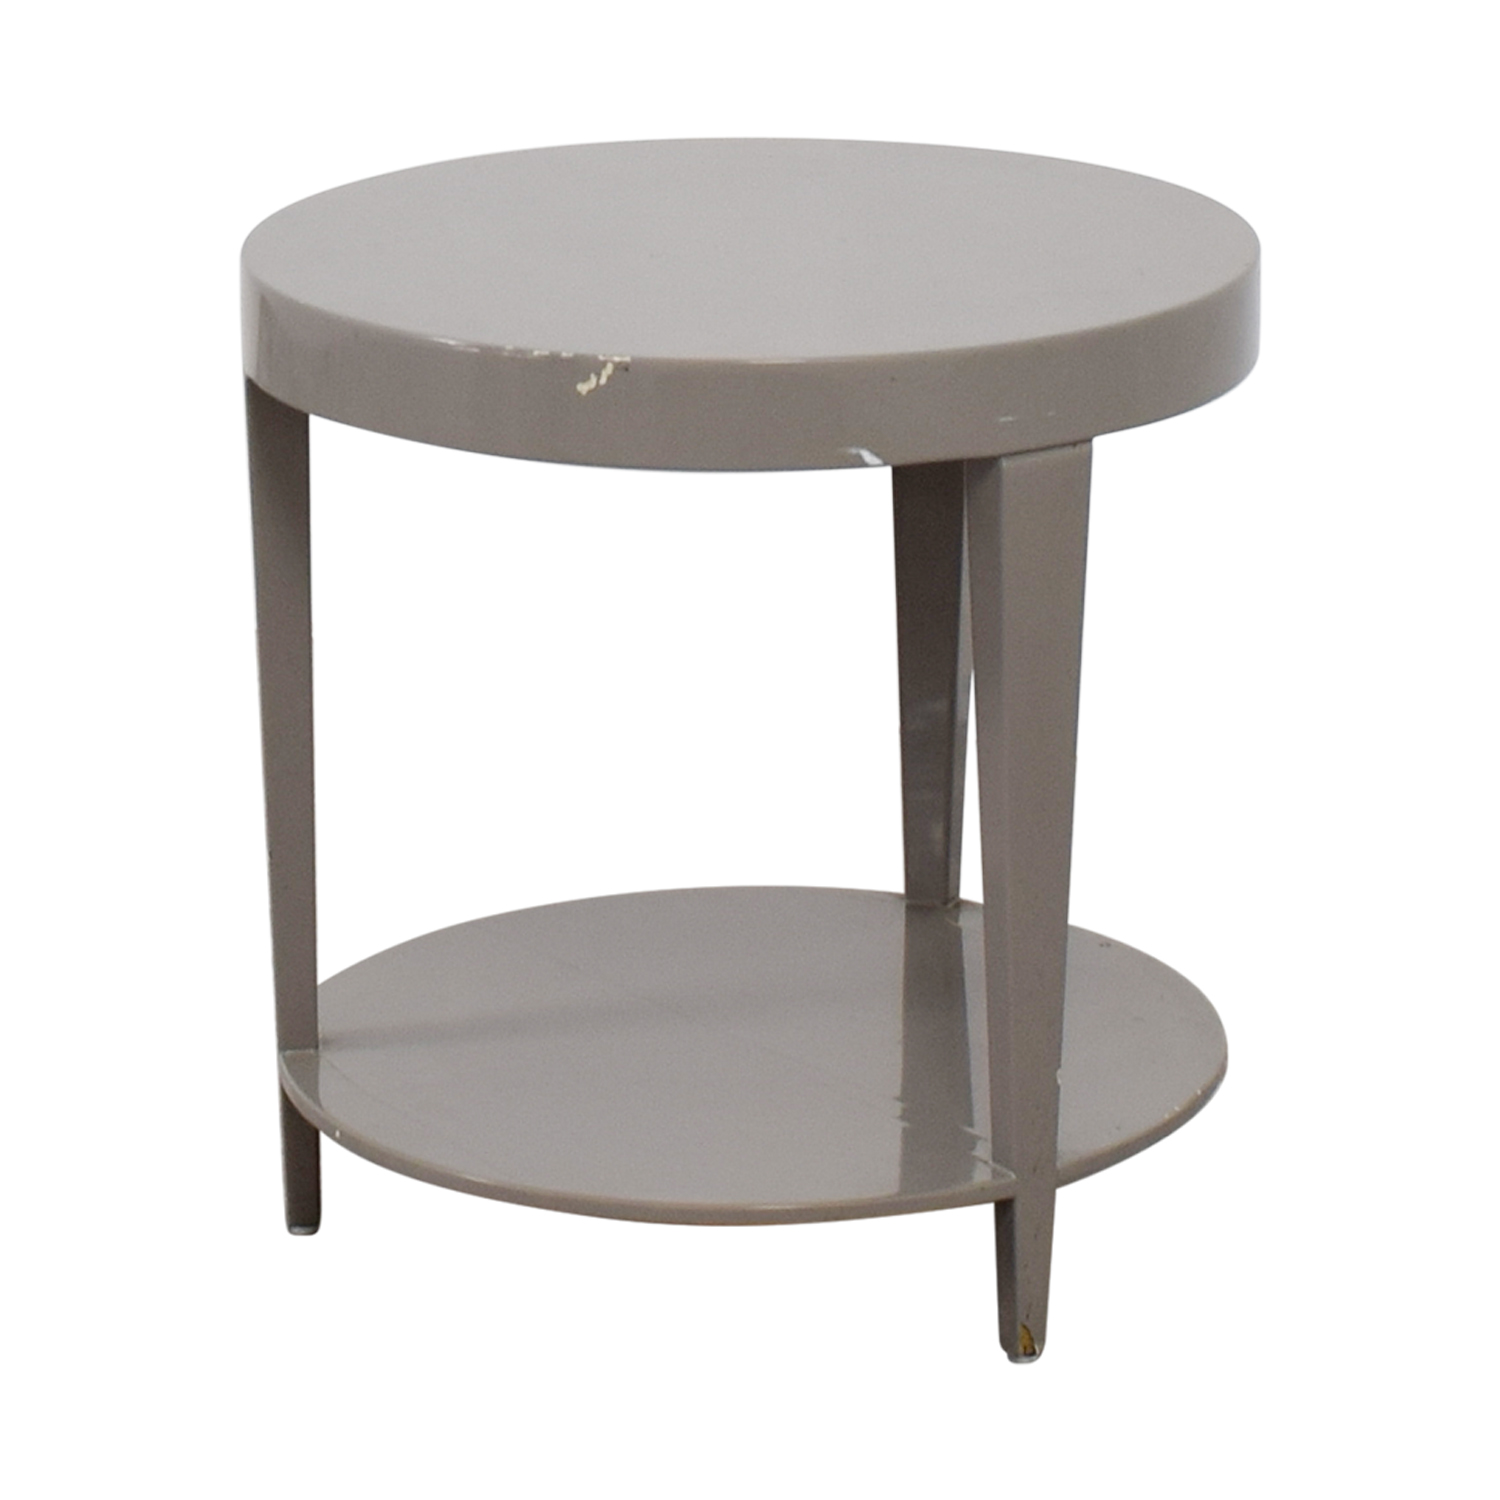 Furniture Masters Round Grey End Table / End Tables